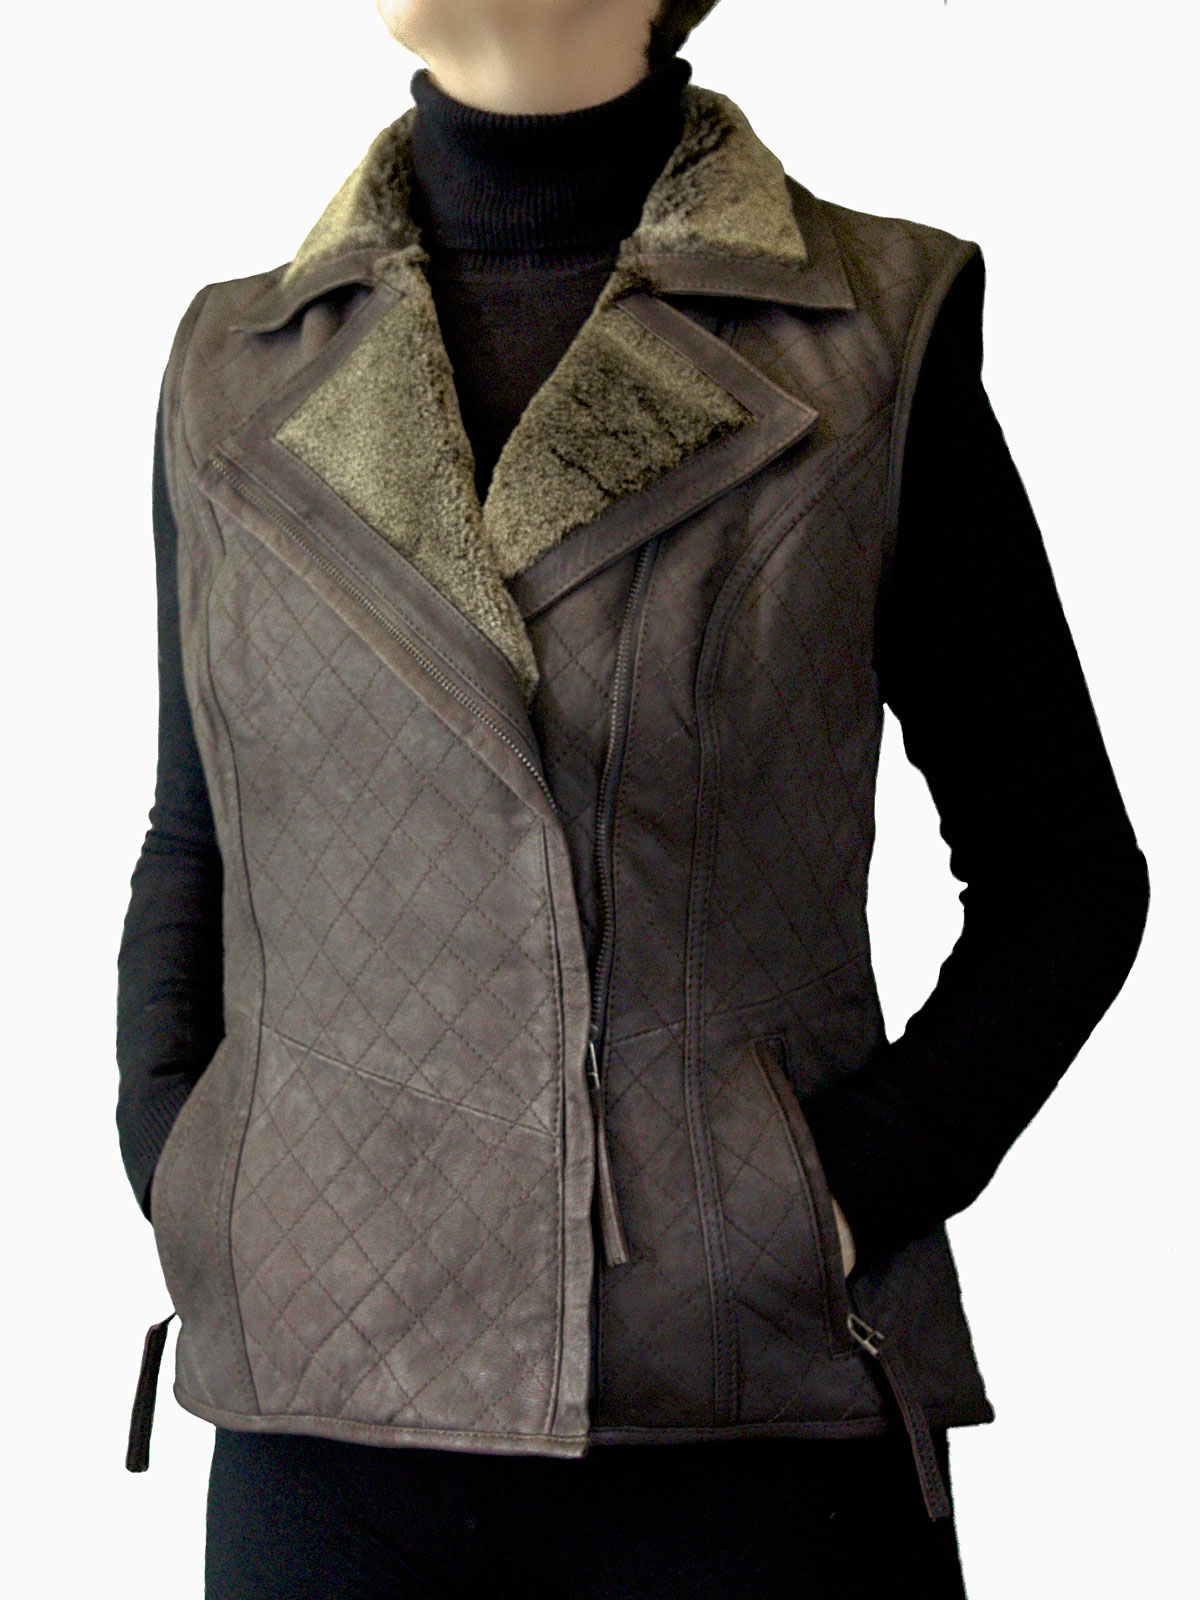 Ladies Brown Leather Gilet faux fur collar